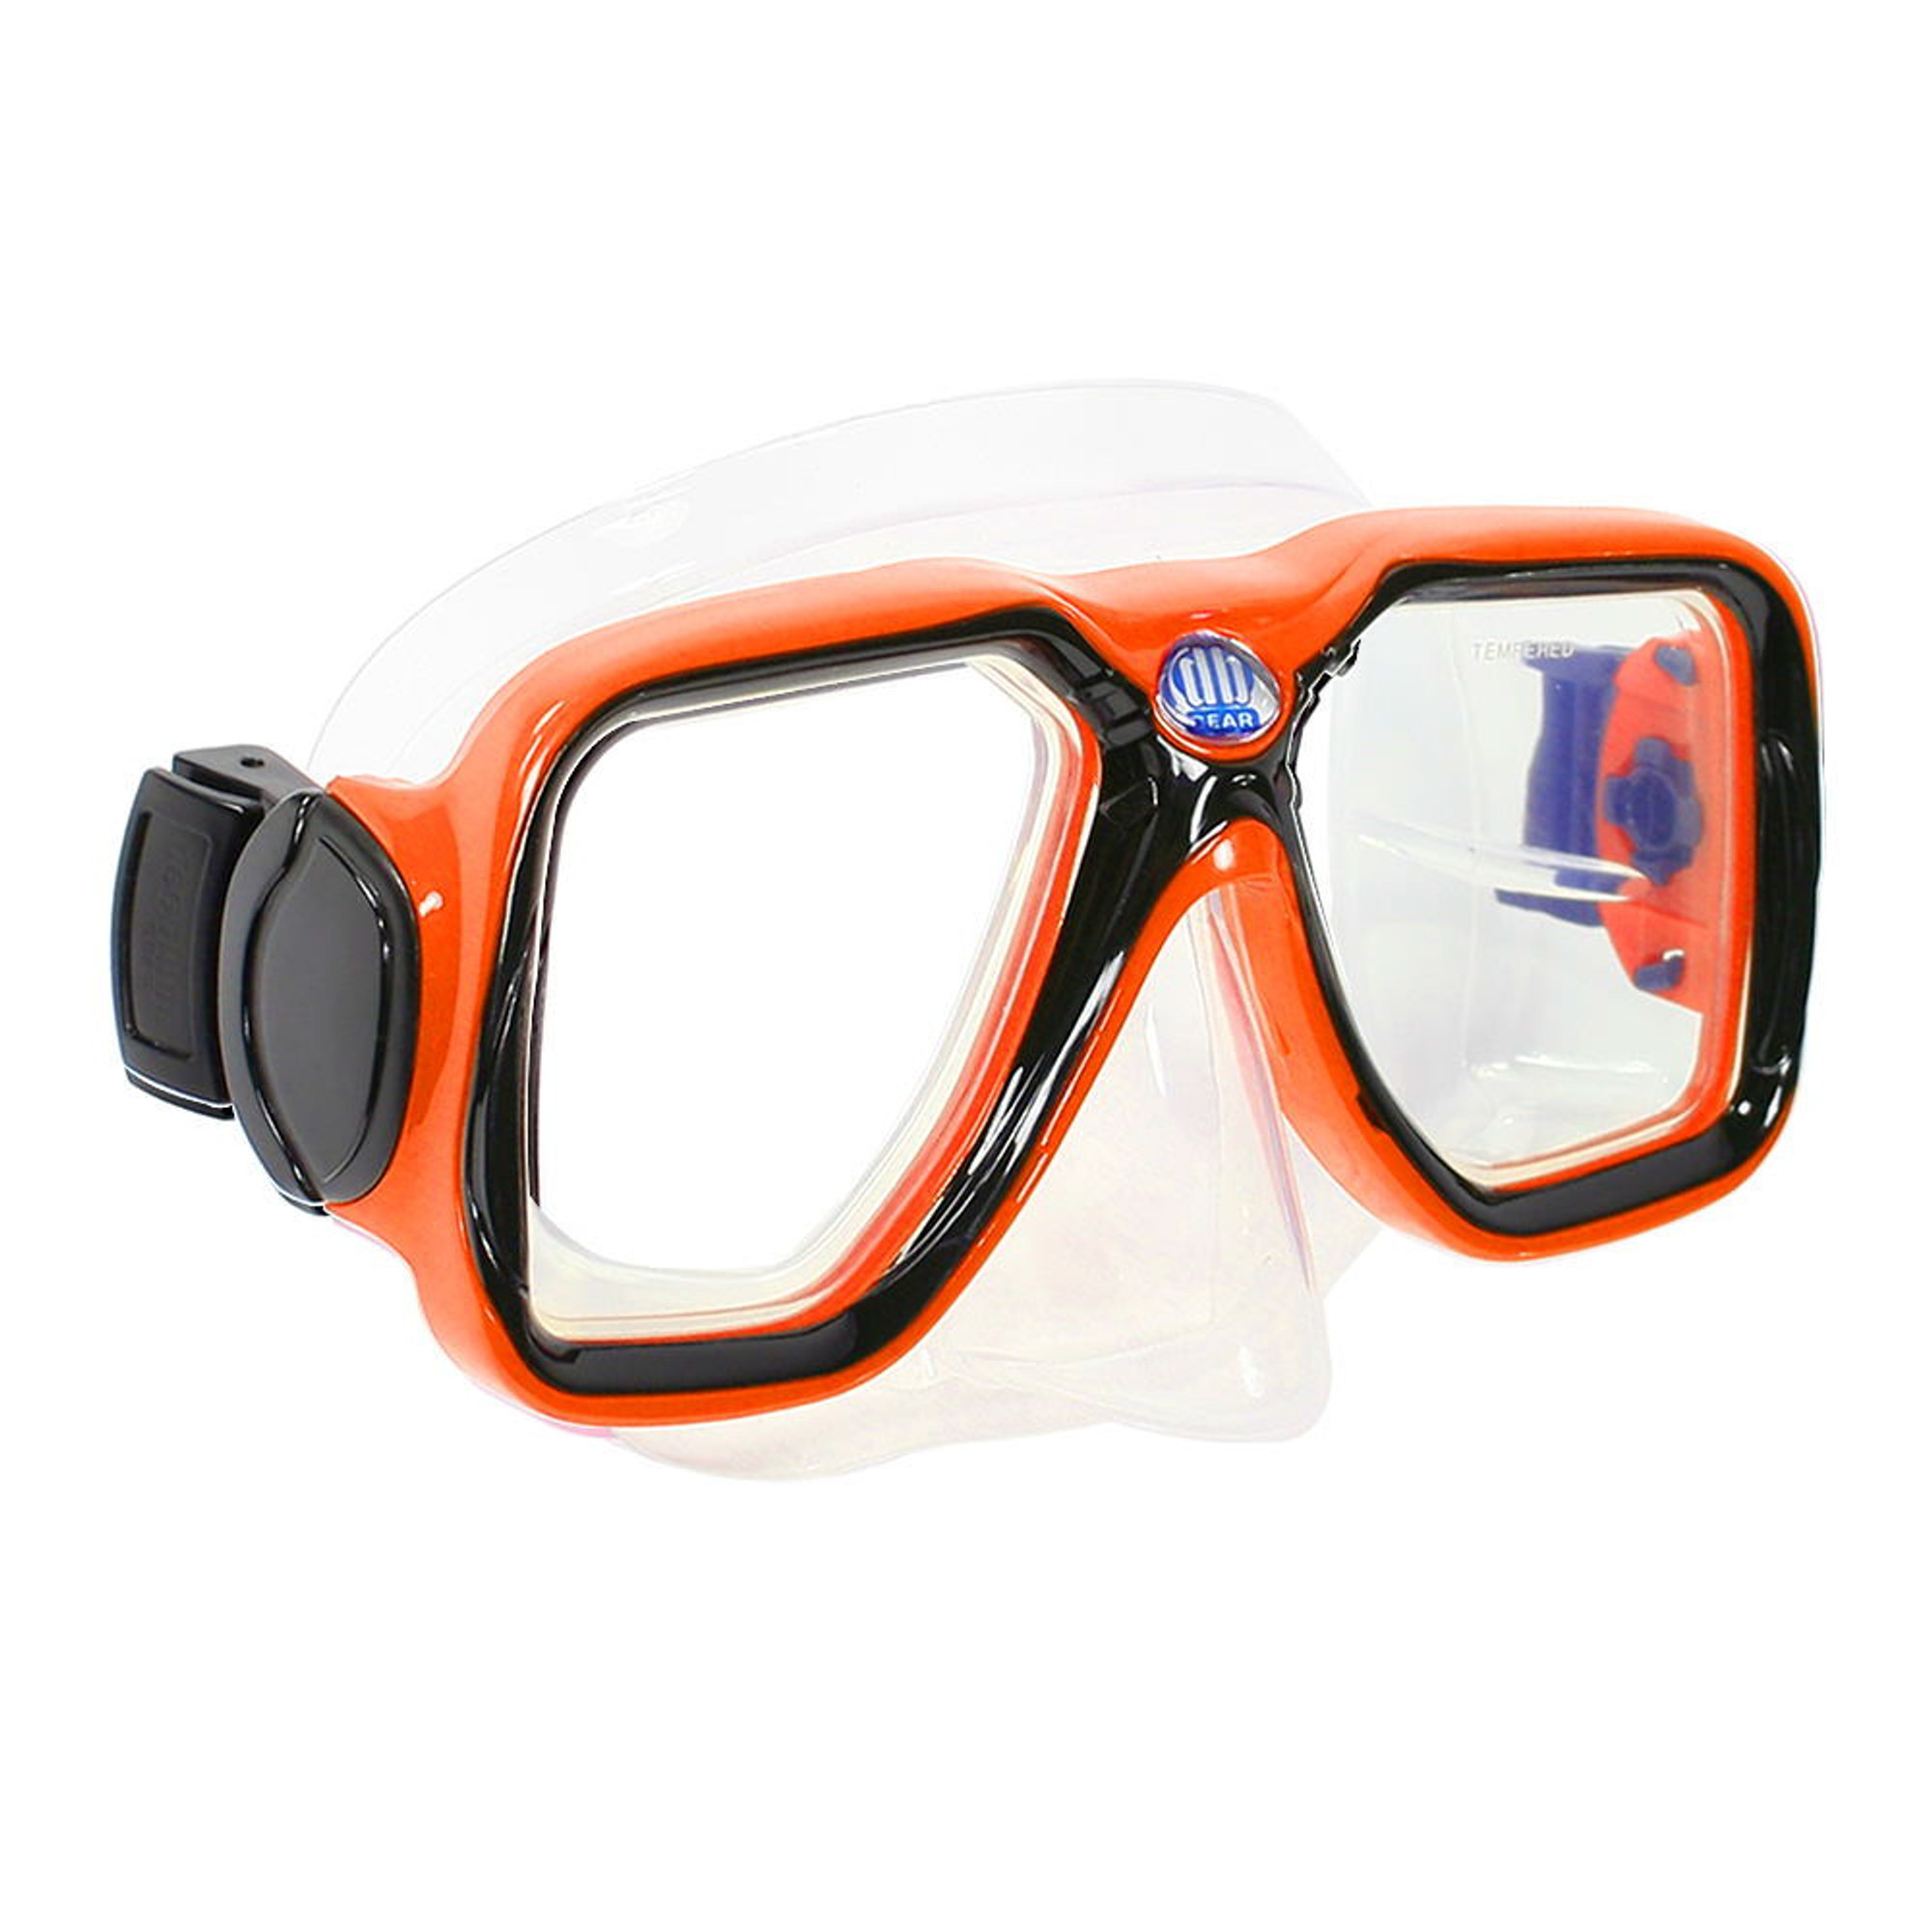 Maui - Prescription Diving/Snorkeling Mask